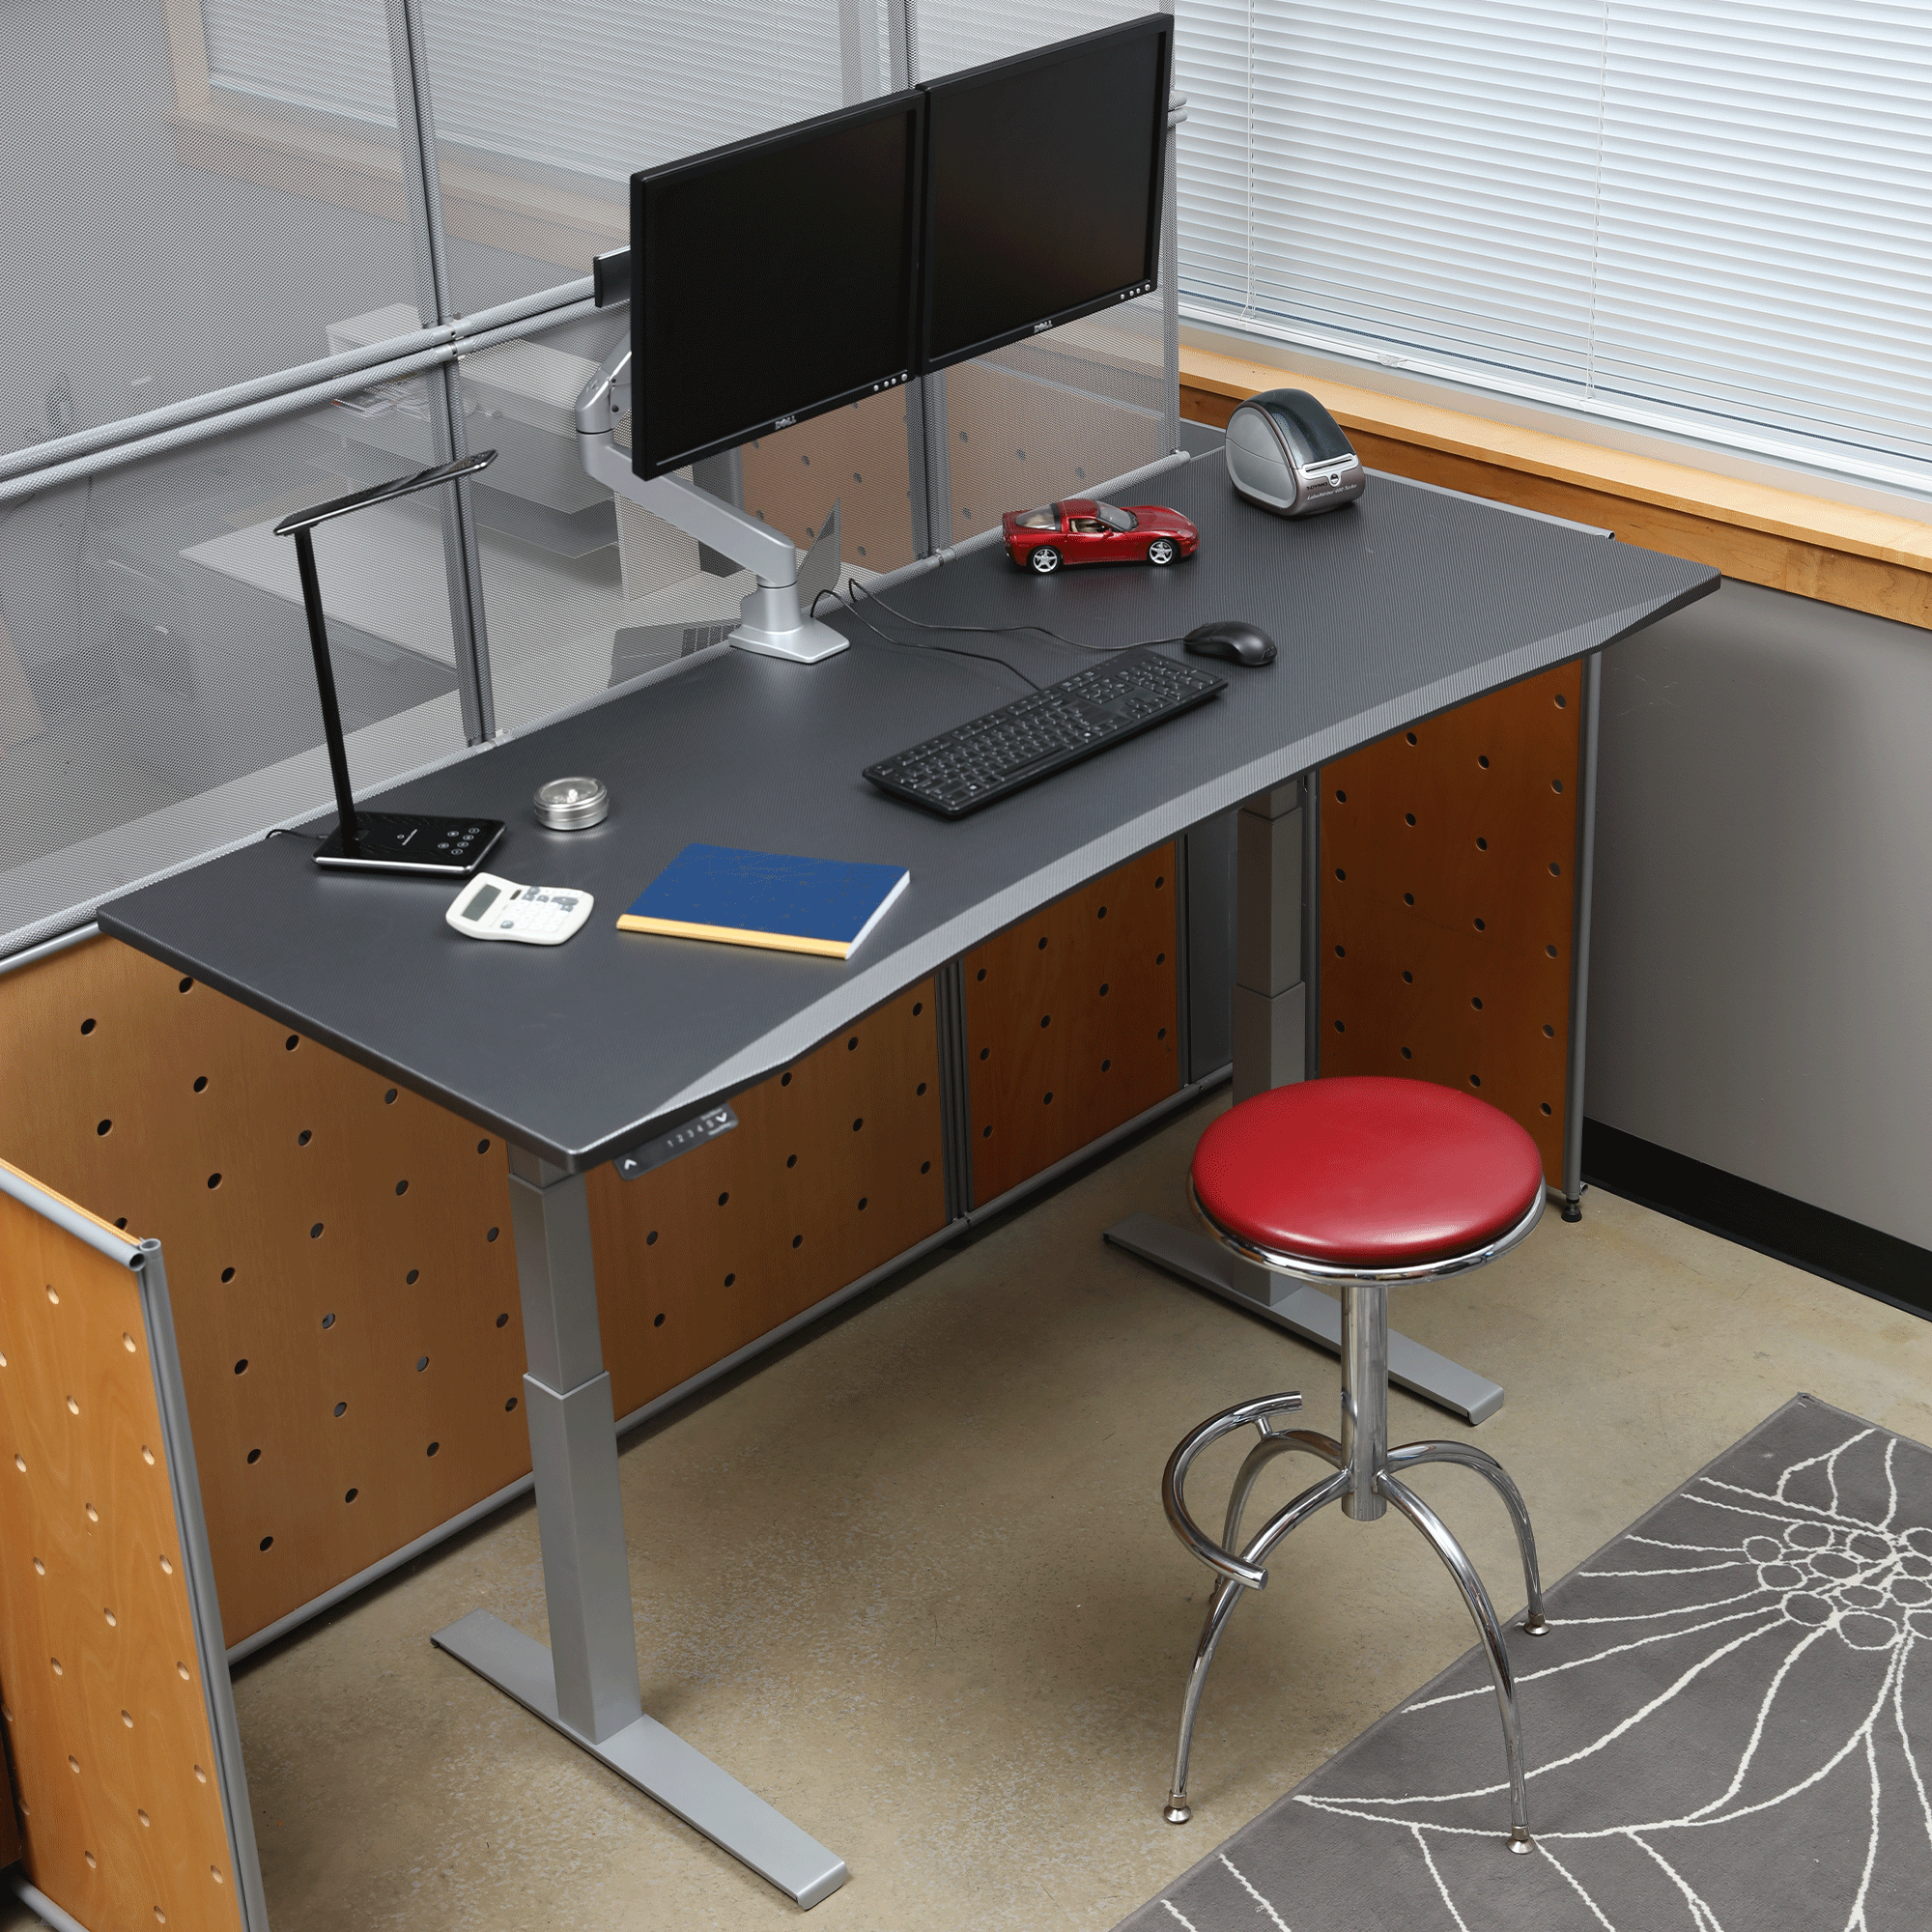 Carbon Fiber Desk in Cubicle with Stool